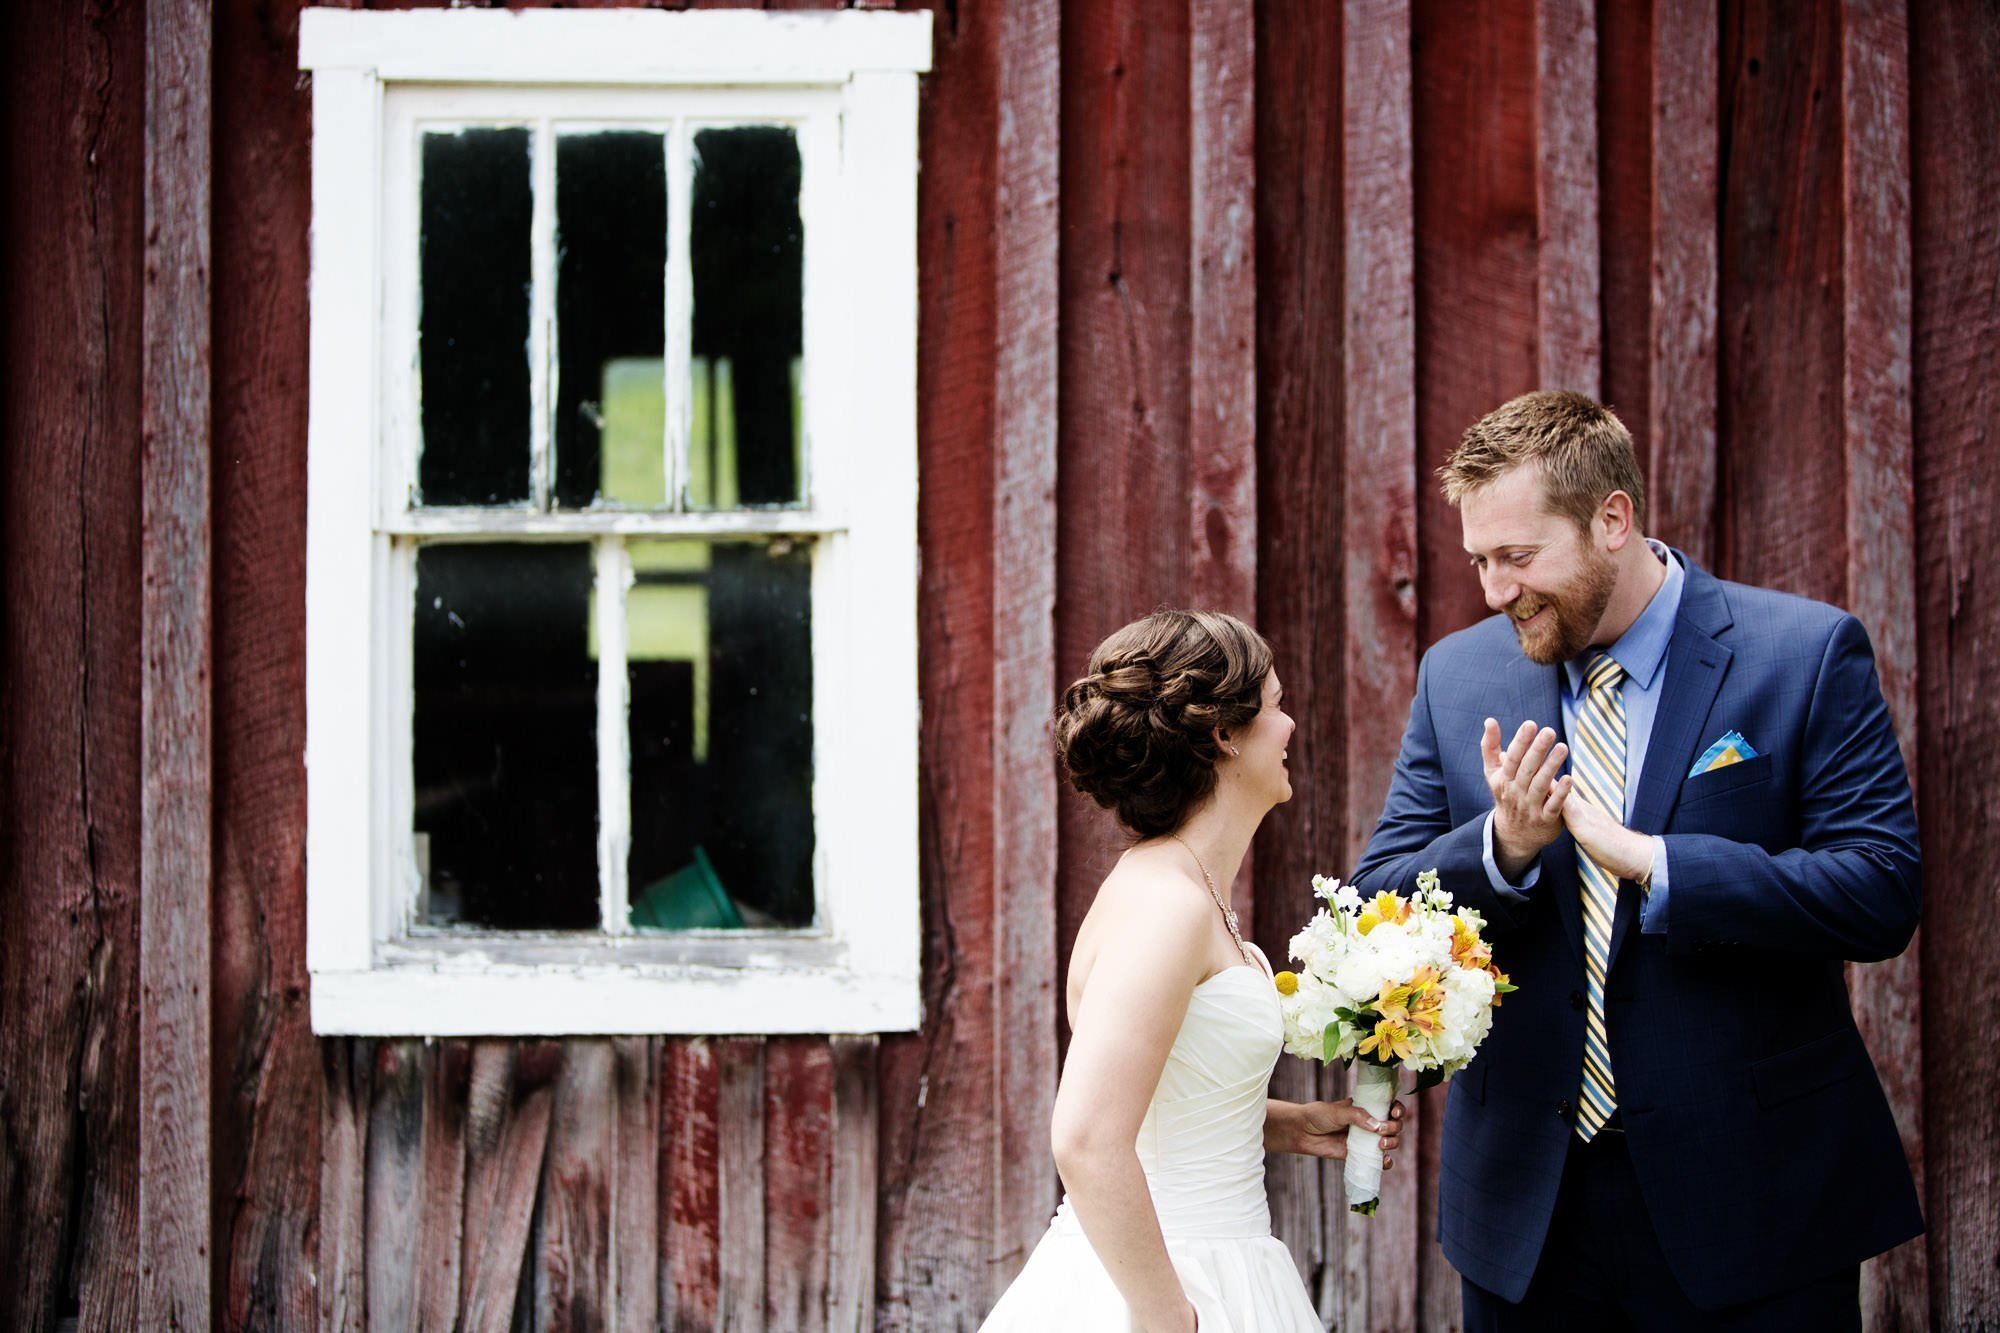 The bride and groom share their first look at their Chanteclaire Farm Wedding.